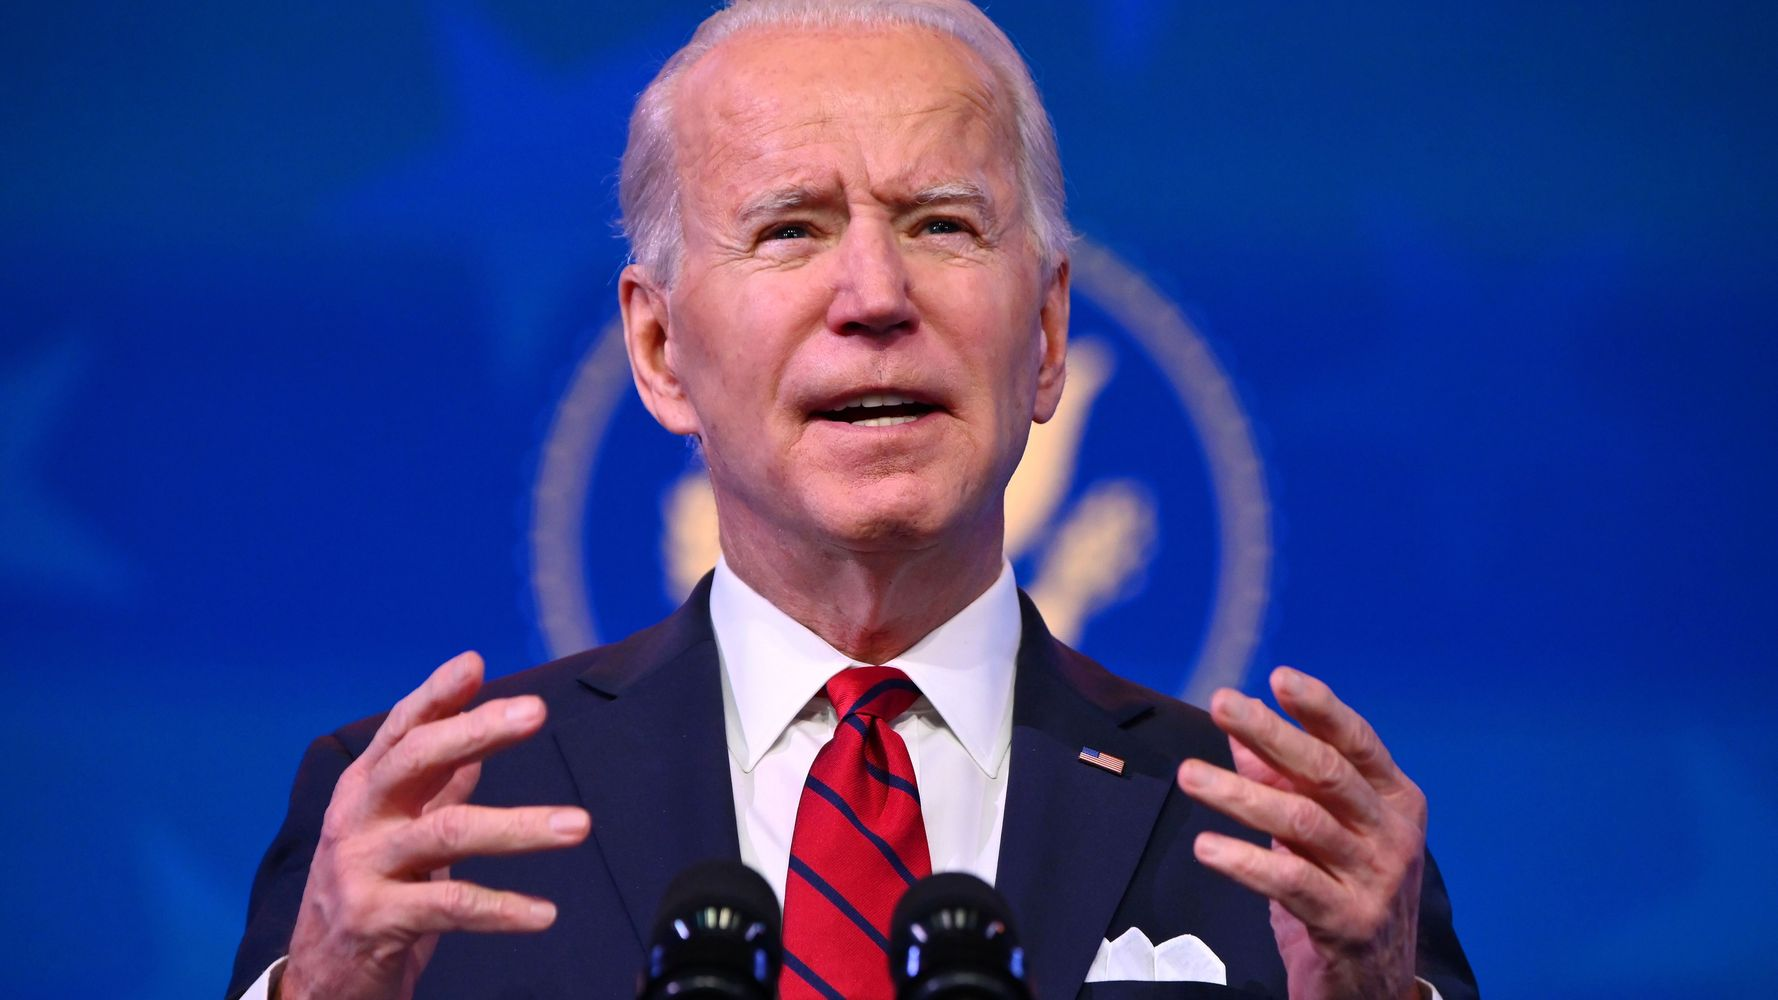 Biden Unveils Vaccination Plan With A Much Bigger Role For The Federal Government